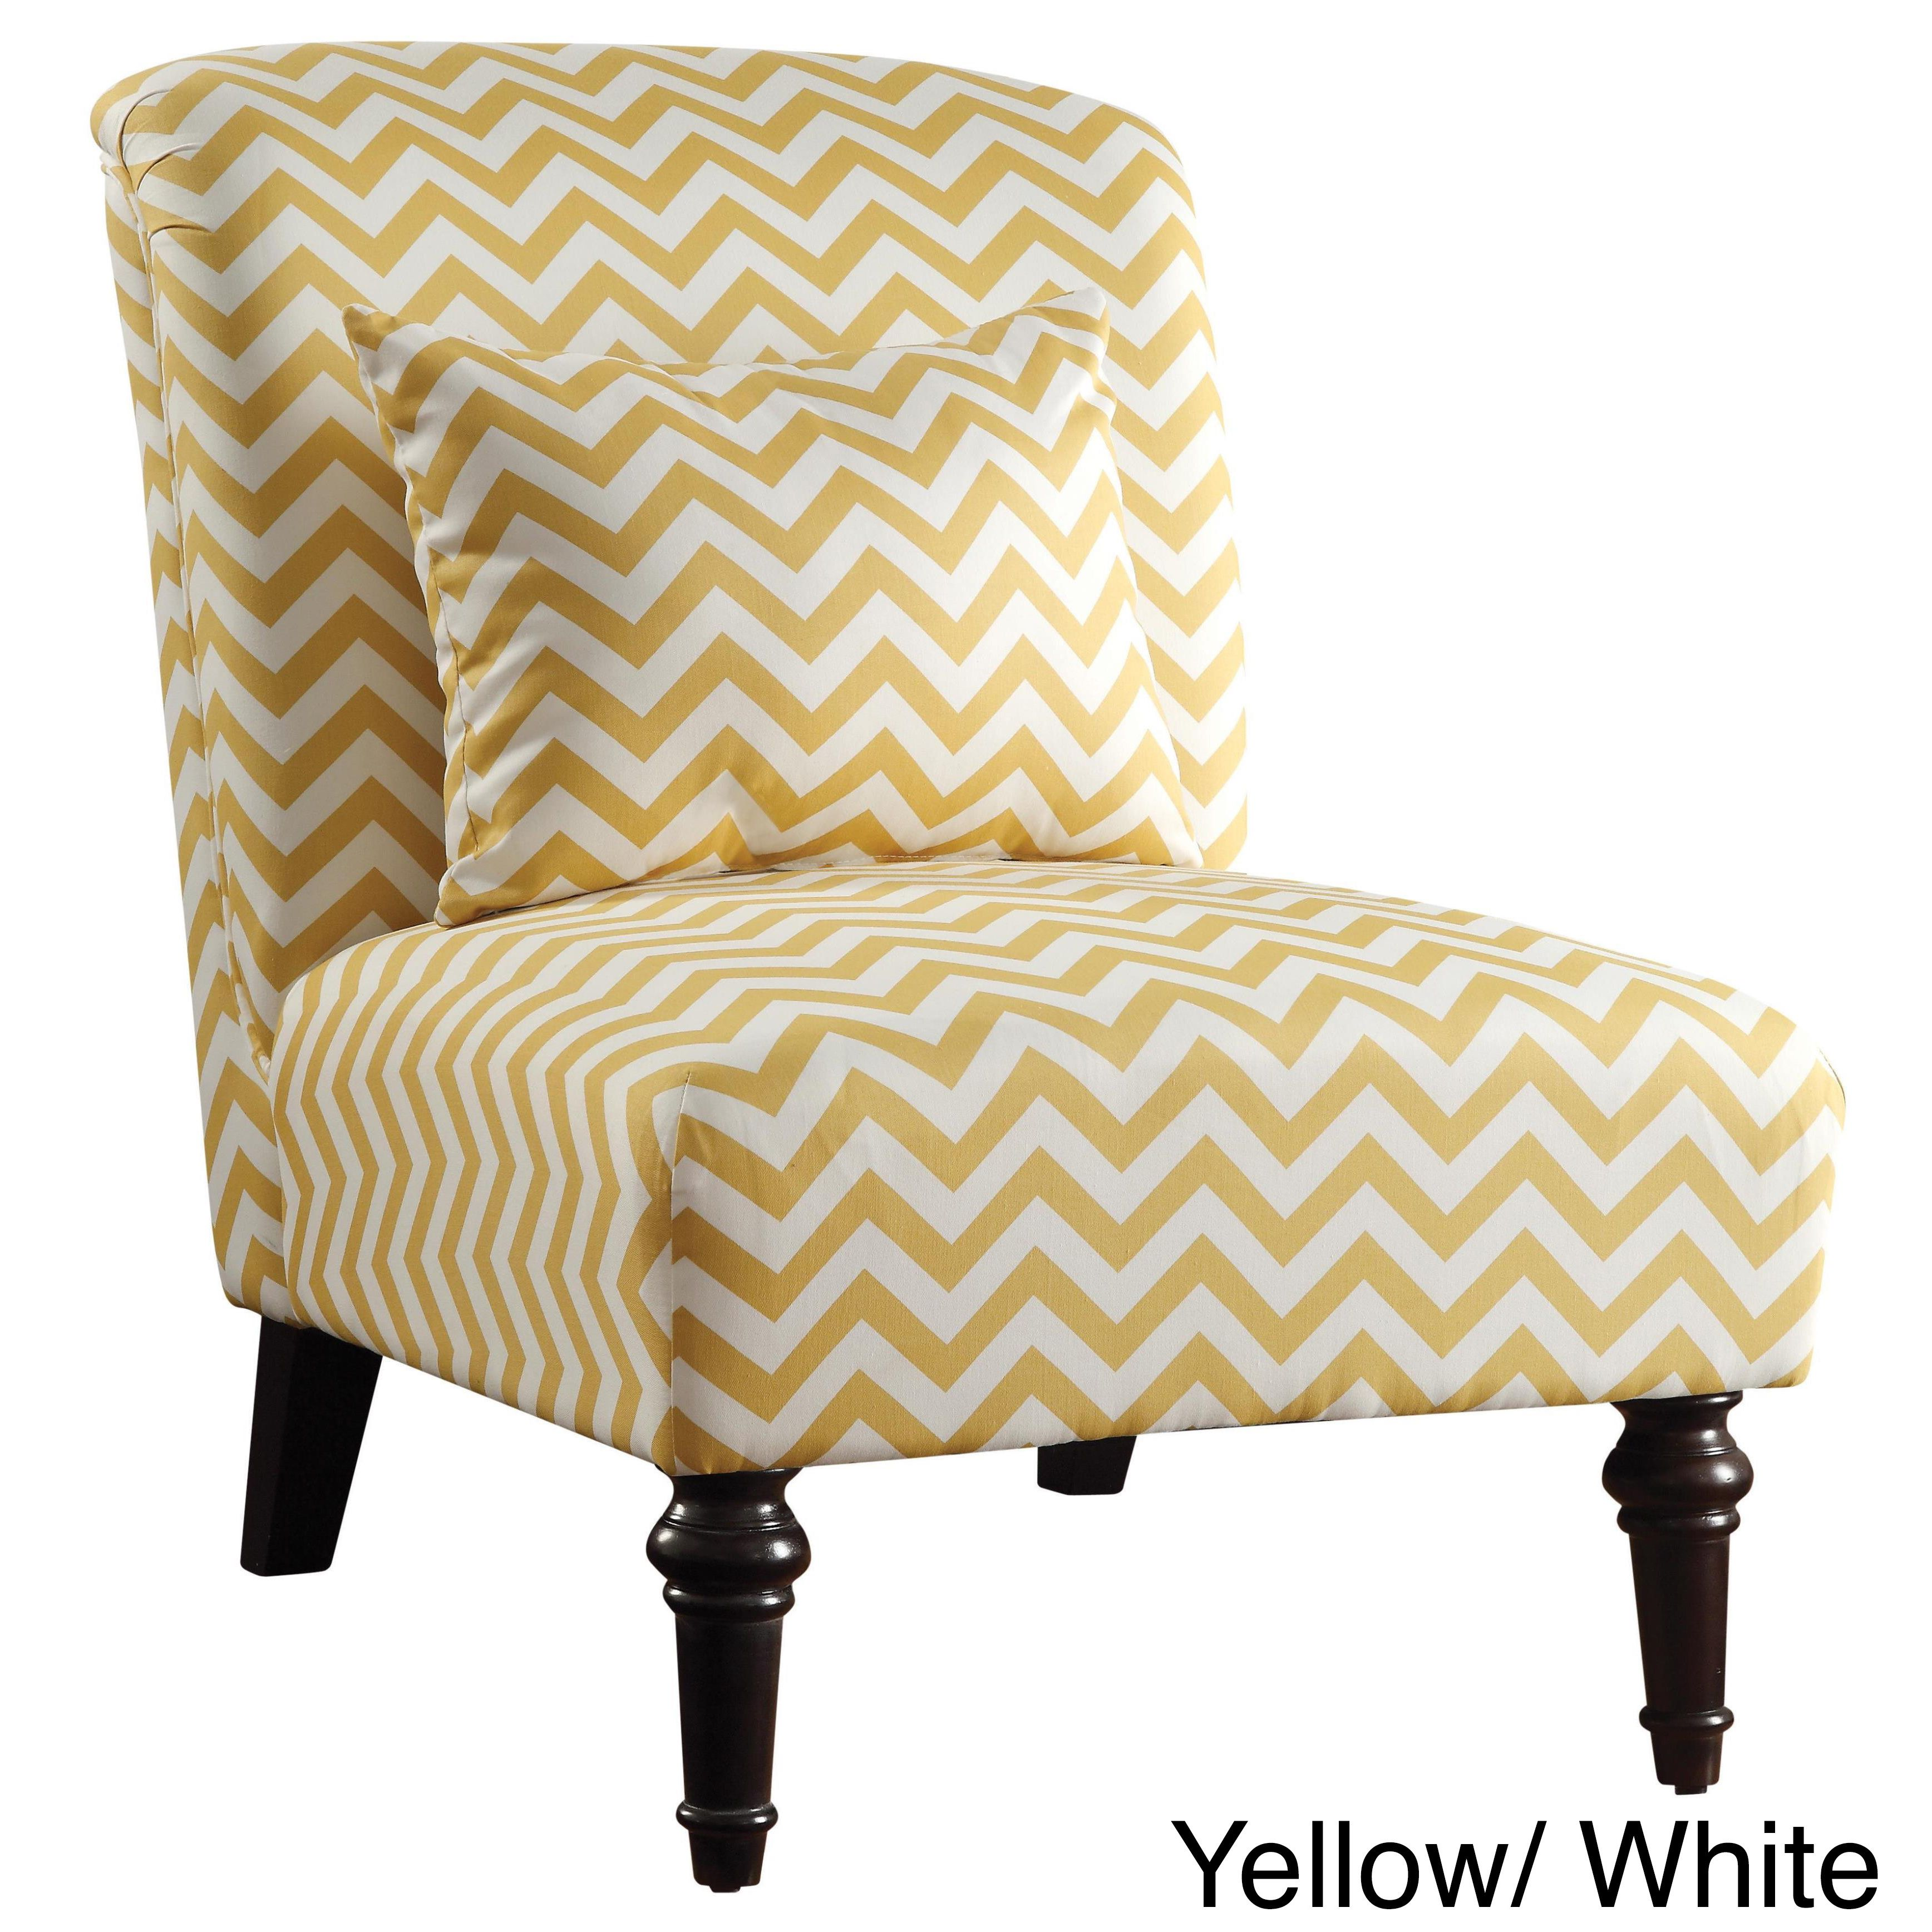 This Geiger Style Living Room Armless Accent Chair Provides Long